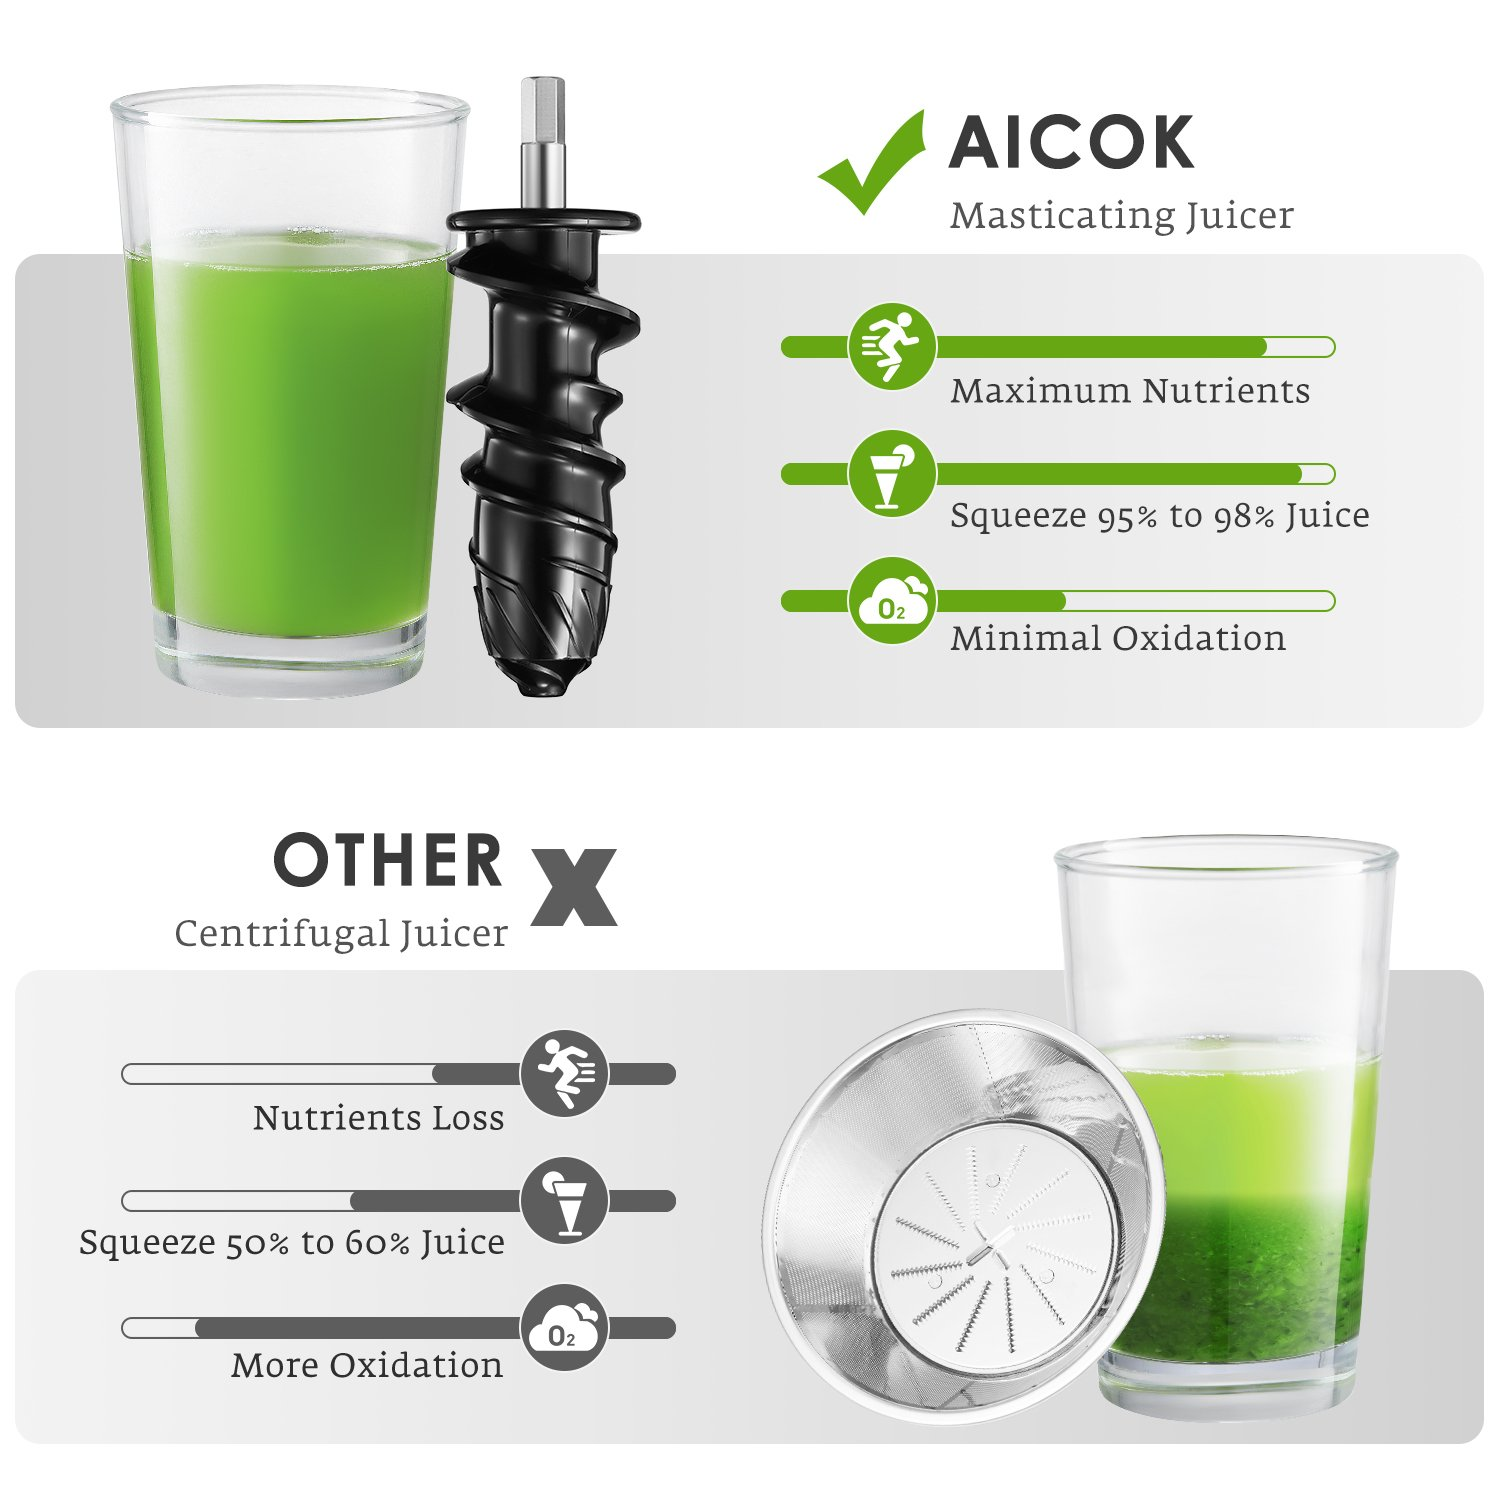 6 Aicok Juicer Review | Best Slow Masticating Juicer 2019 3